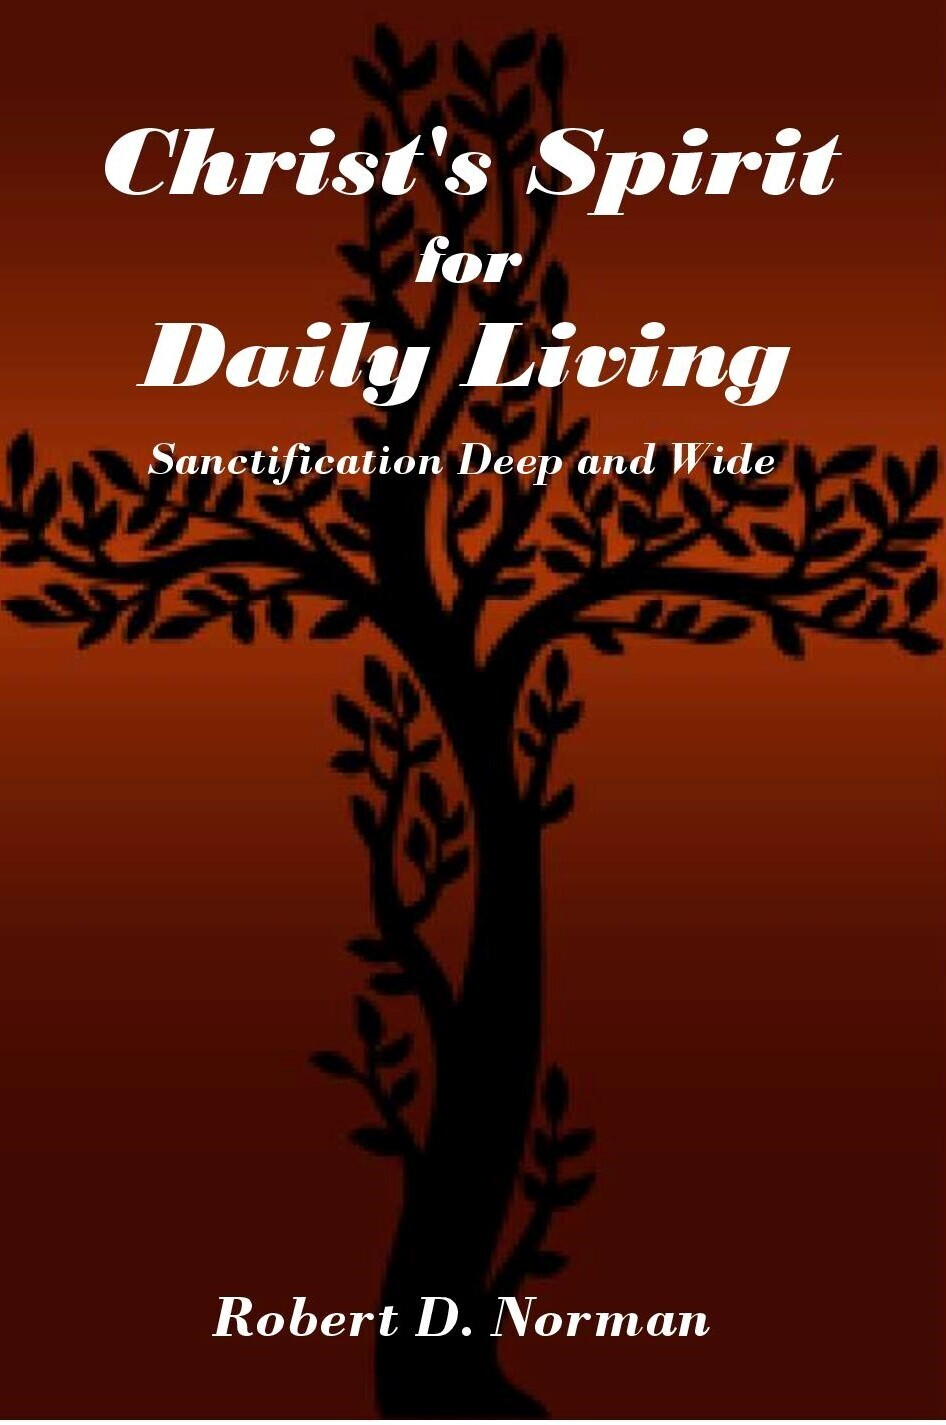 Christ's Spirit for Daily Living: Sanctification Deep and Wide by Robert D. Norman (Soft-Cover & E-Book)